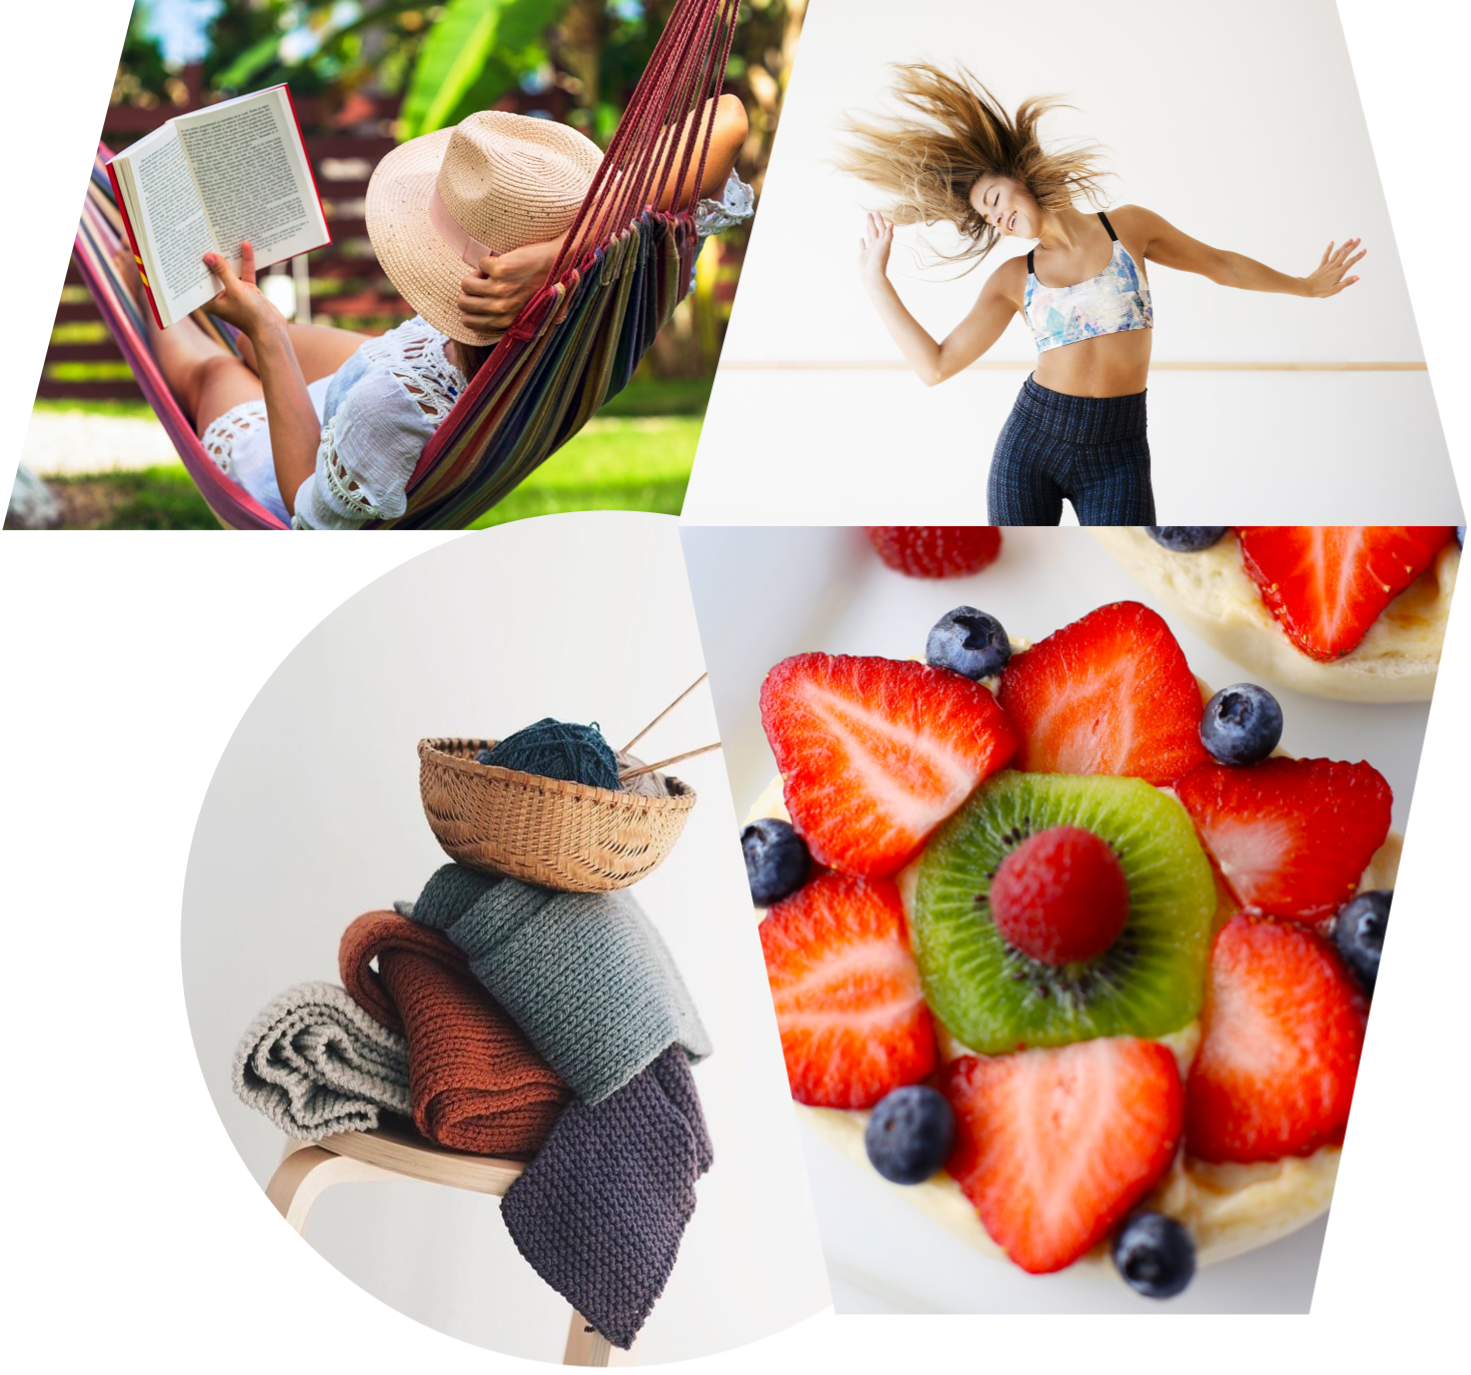 Summer of Becoming the Healthiest & Happiest You! (Part 4)